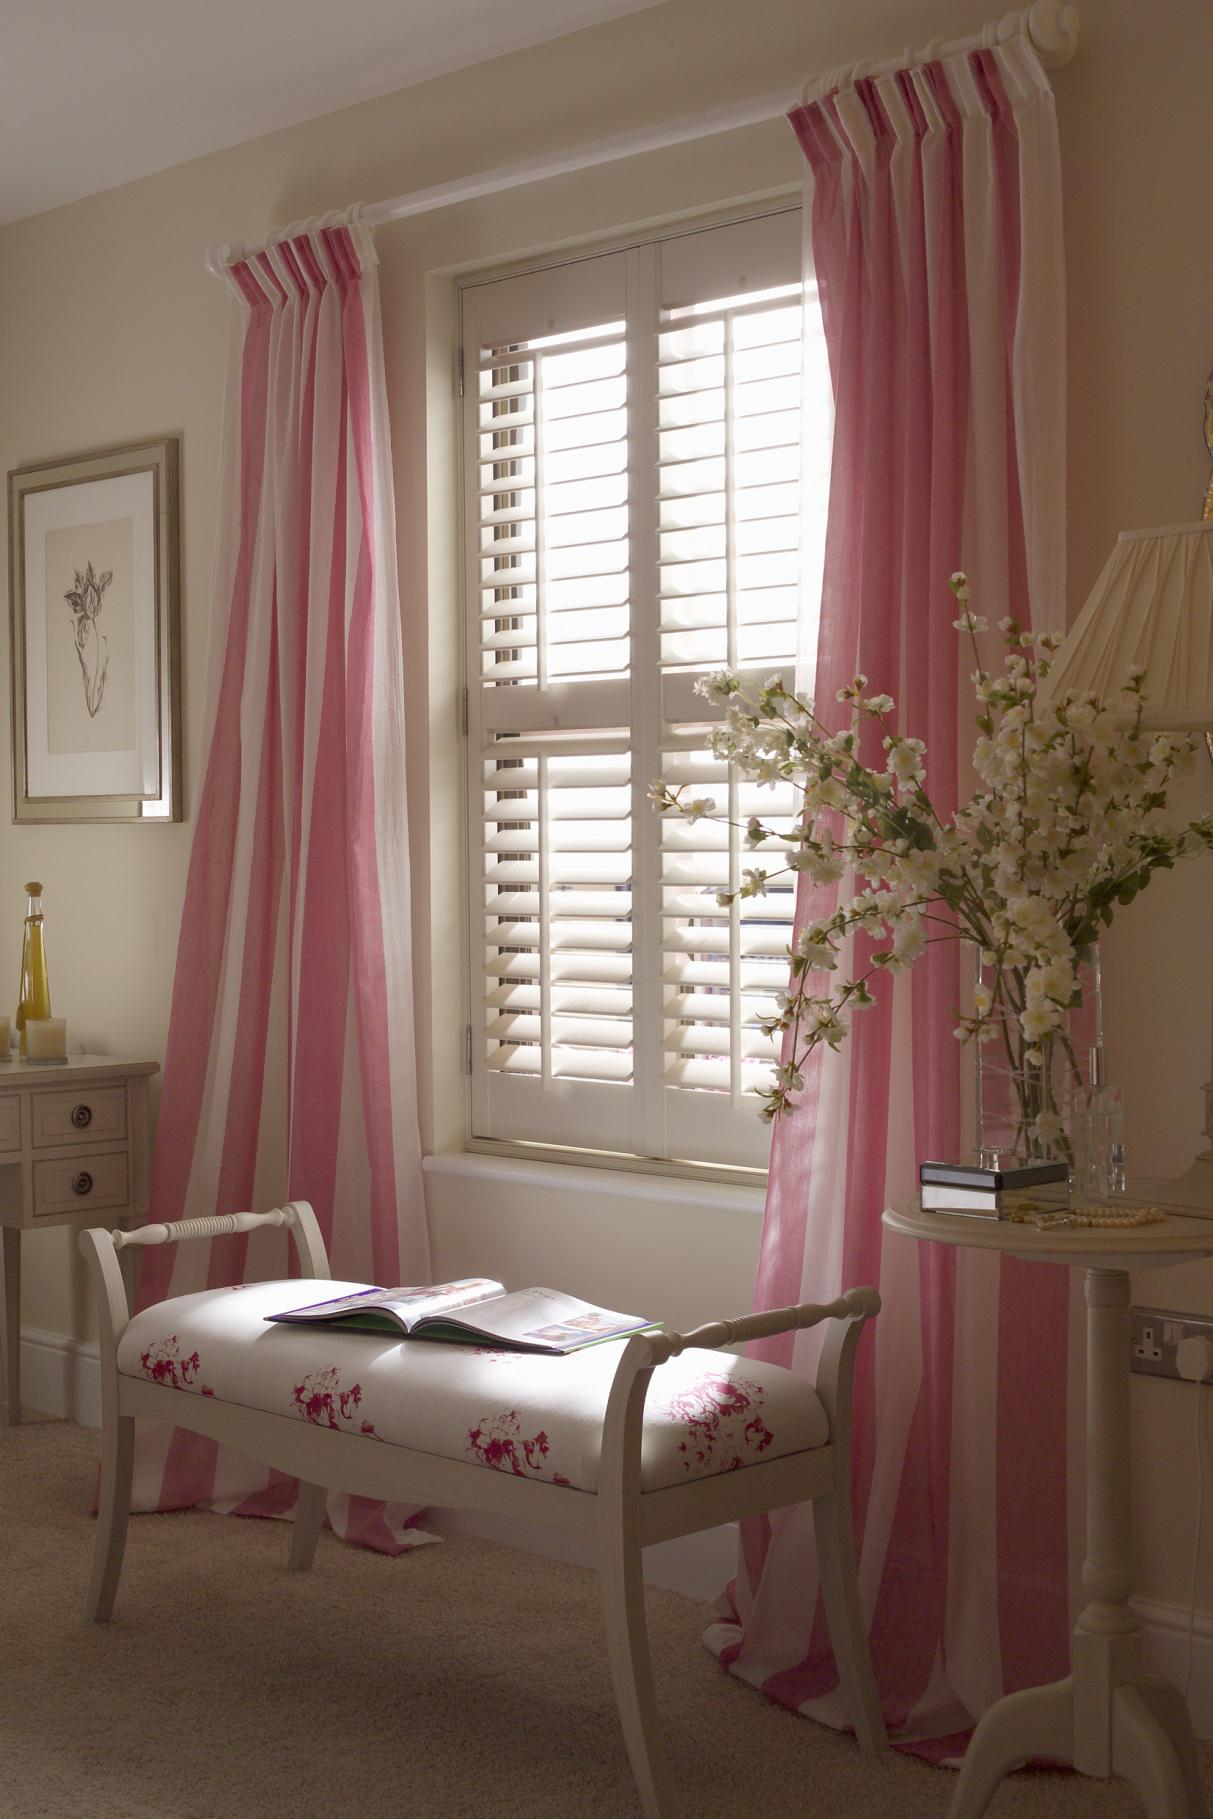 Combining plantation shutters with drapes